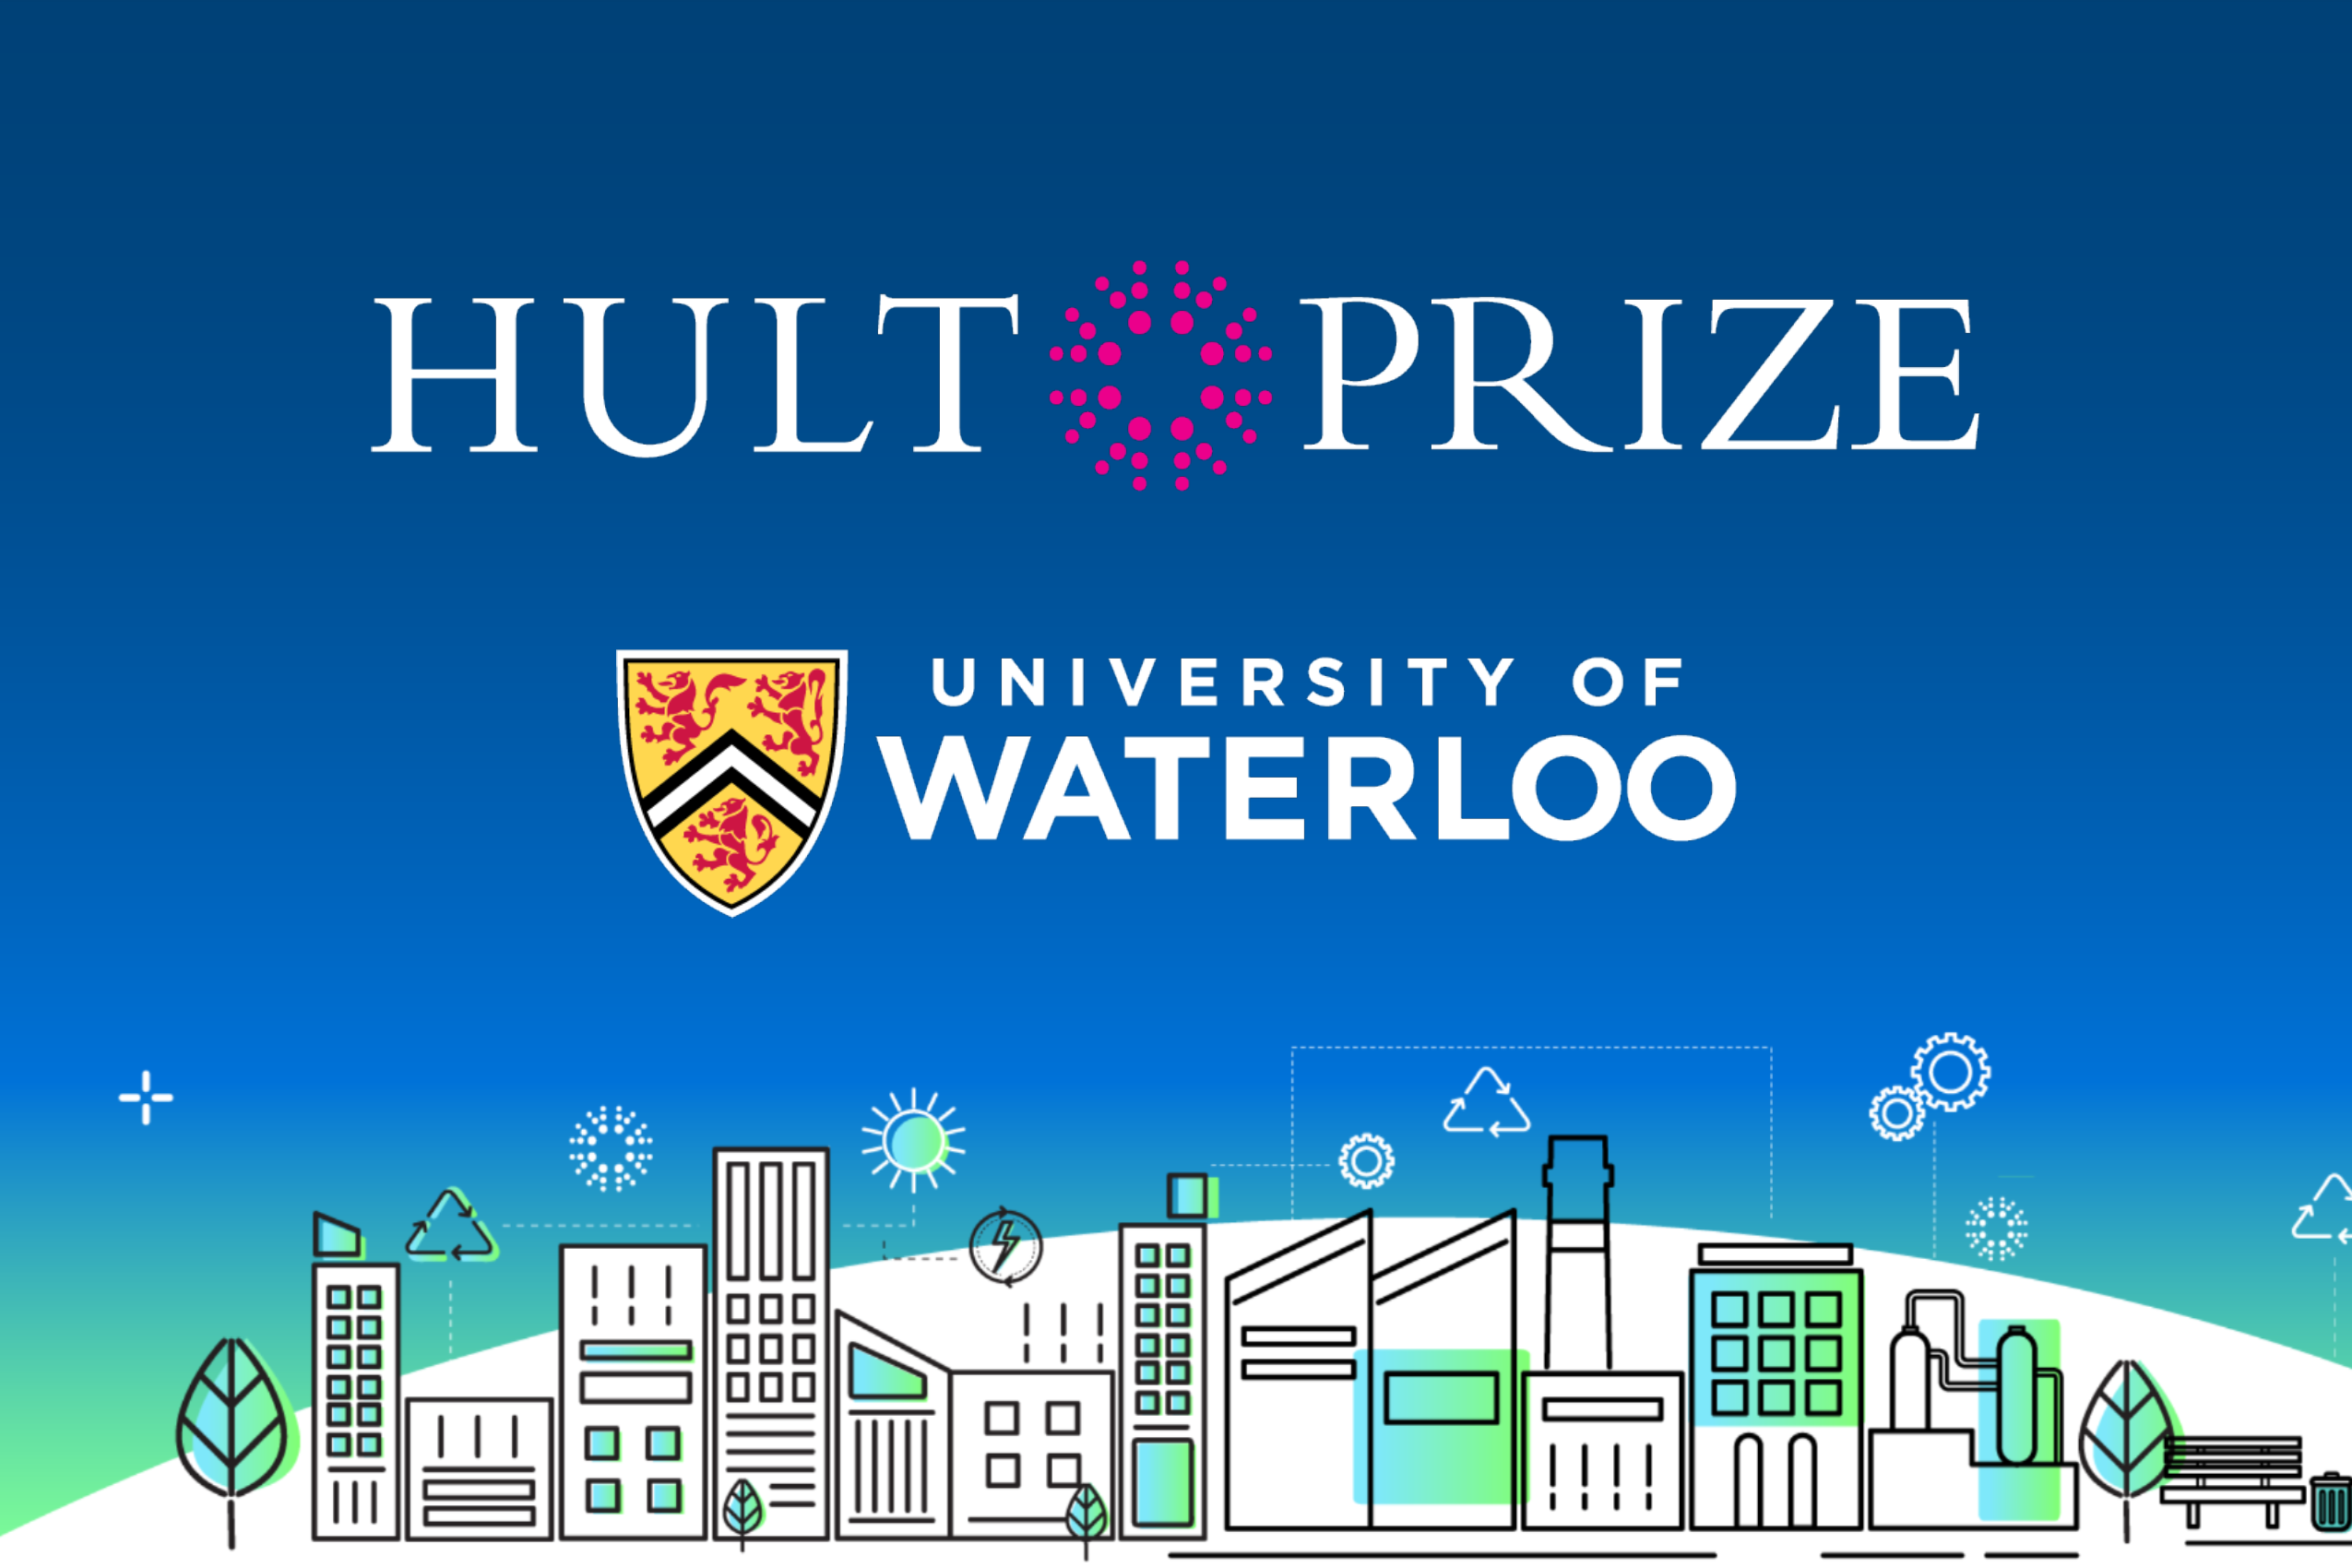 Hult Prize at Waterloo decorative banner image